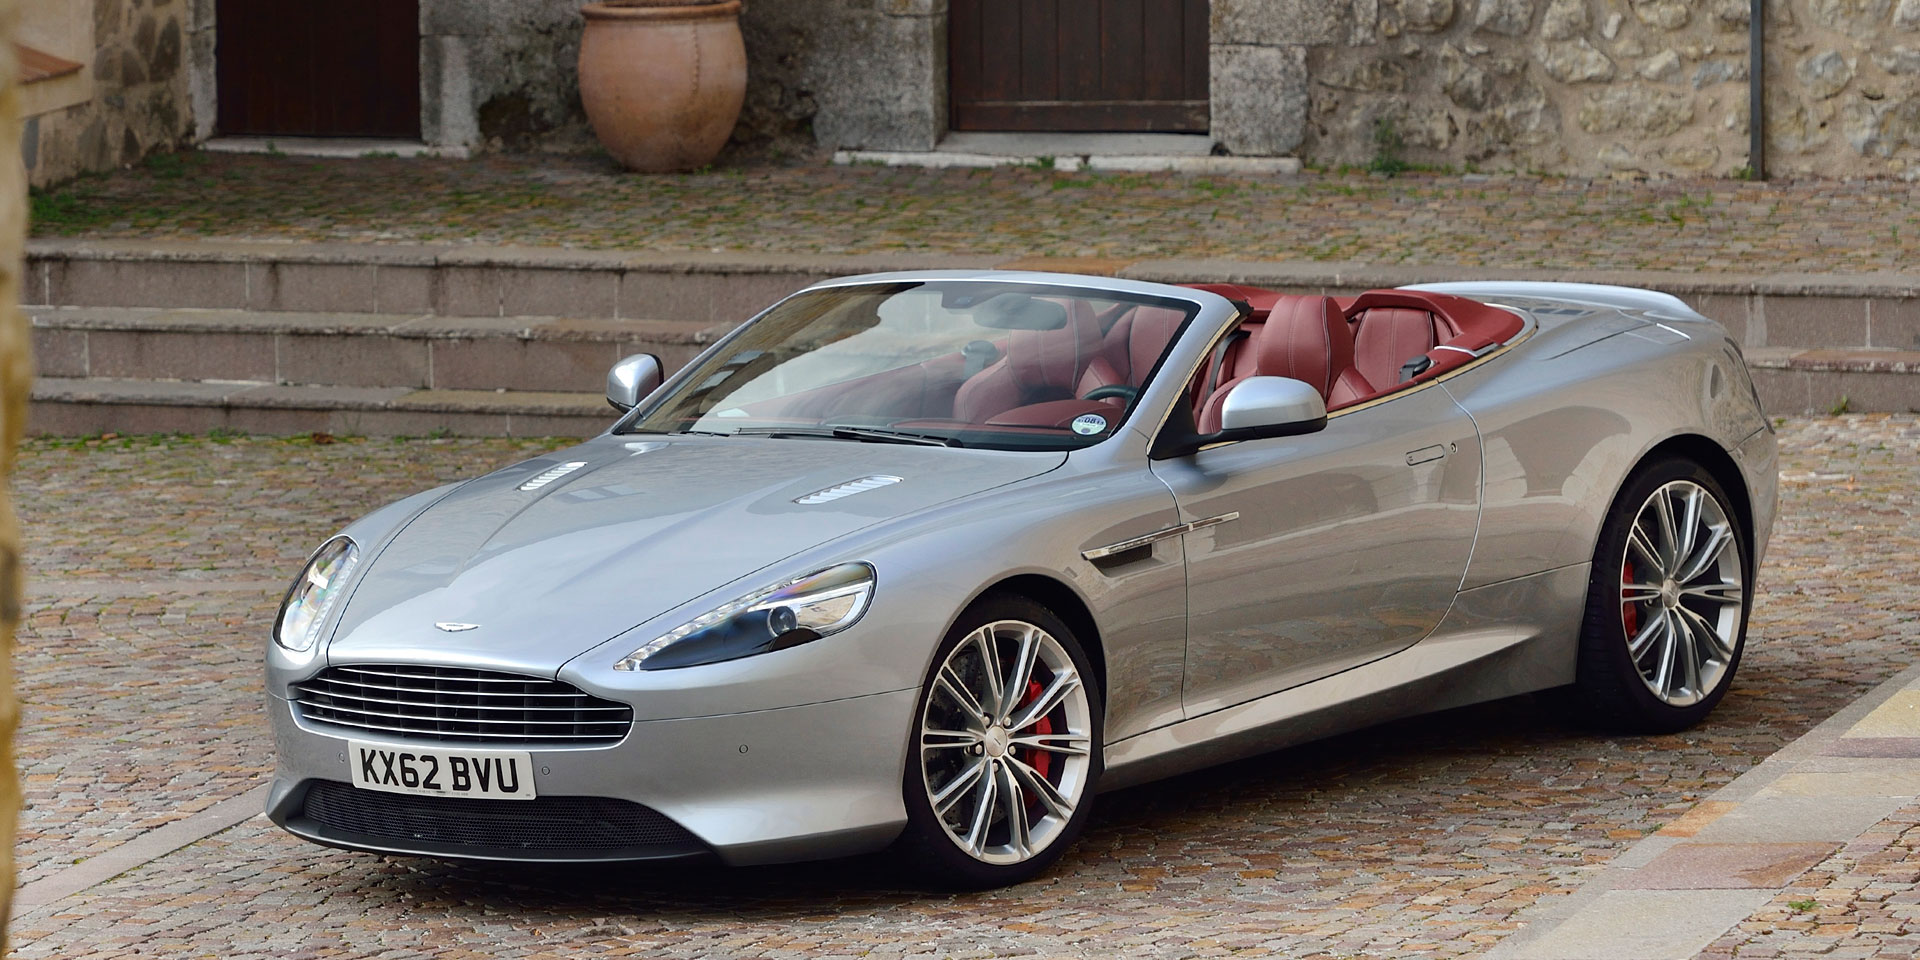 2016 Aston Martin Db9 Gt Volante Vehicles On Display